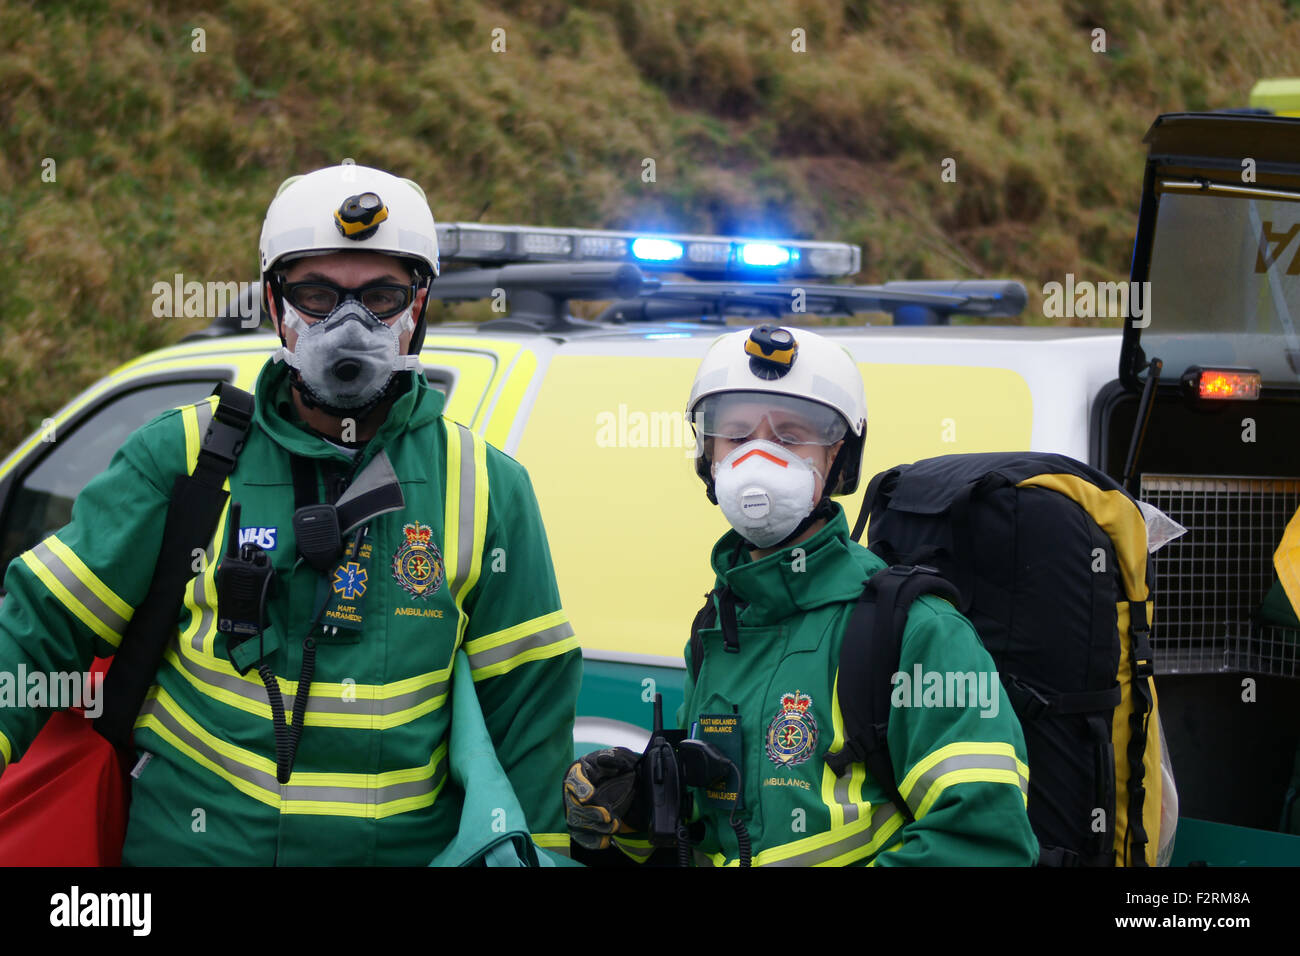 Hazardous Area Response Team at disaster zone, HART Team - Stock Image